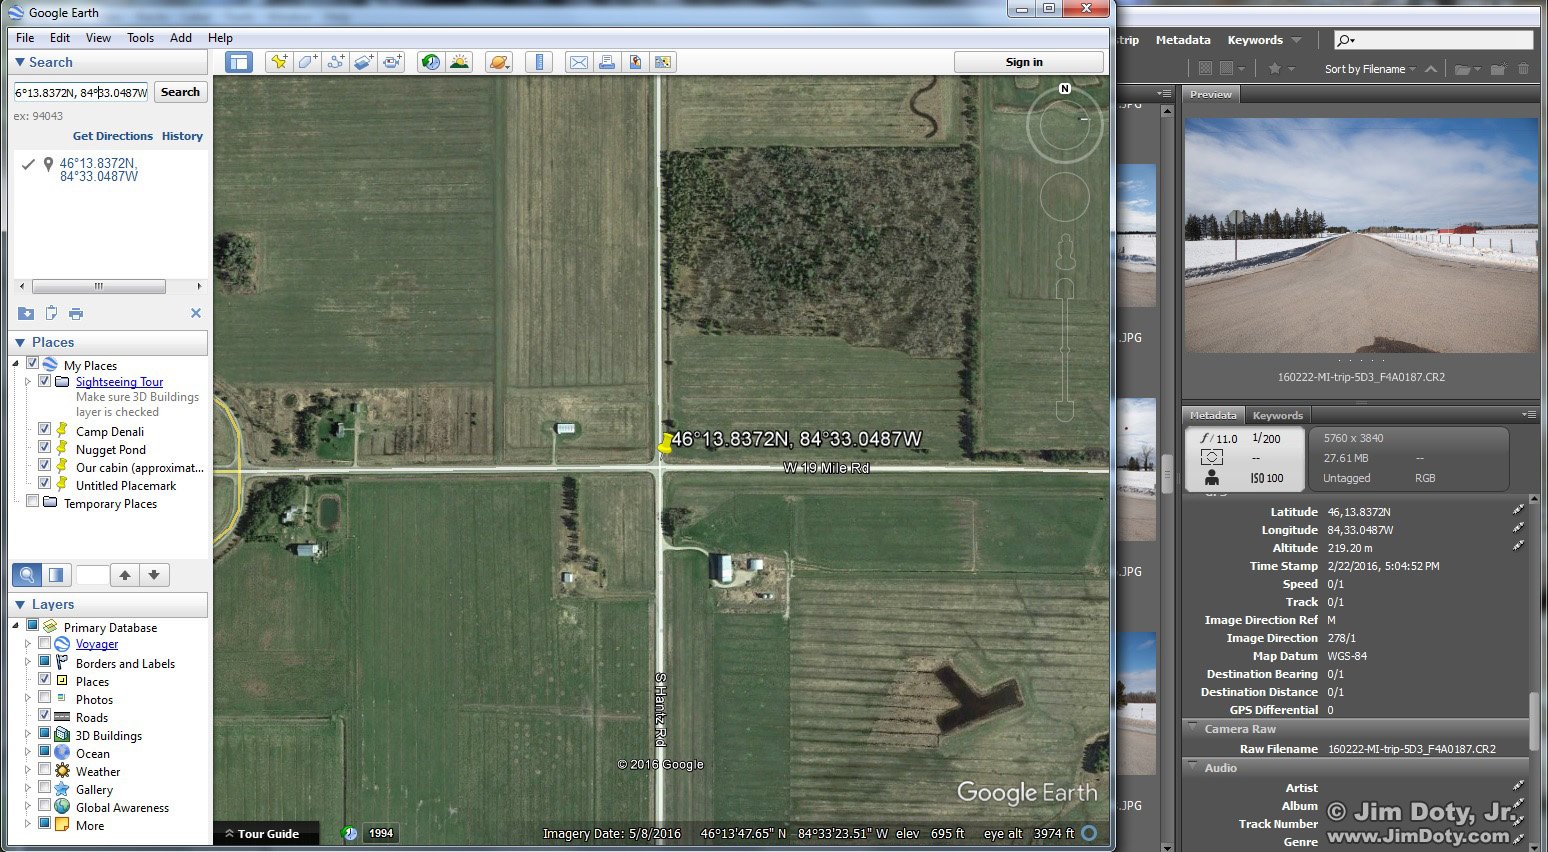 Google Earth and Adobe Bridge. GPS coordinates from a Canon 5D Mark III.